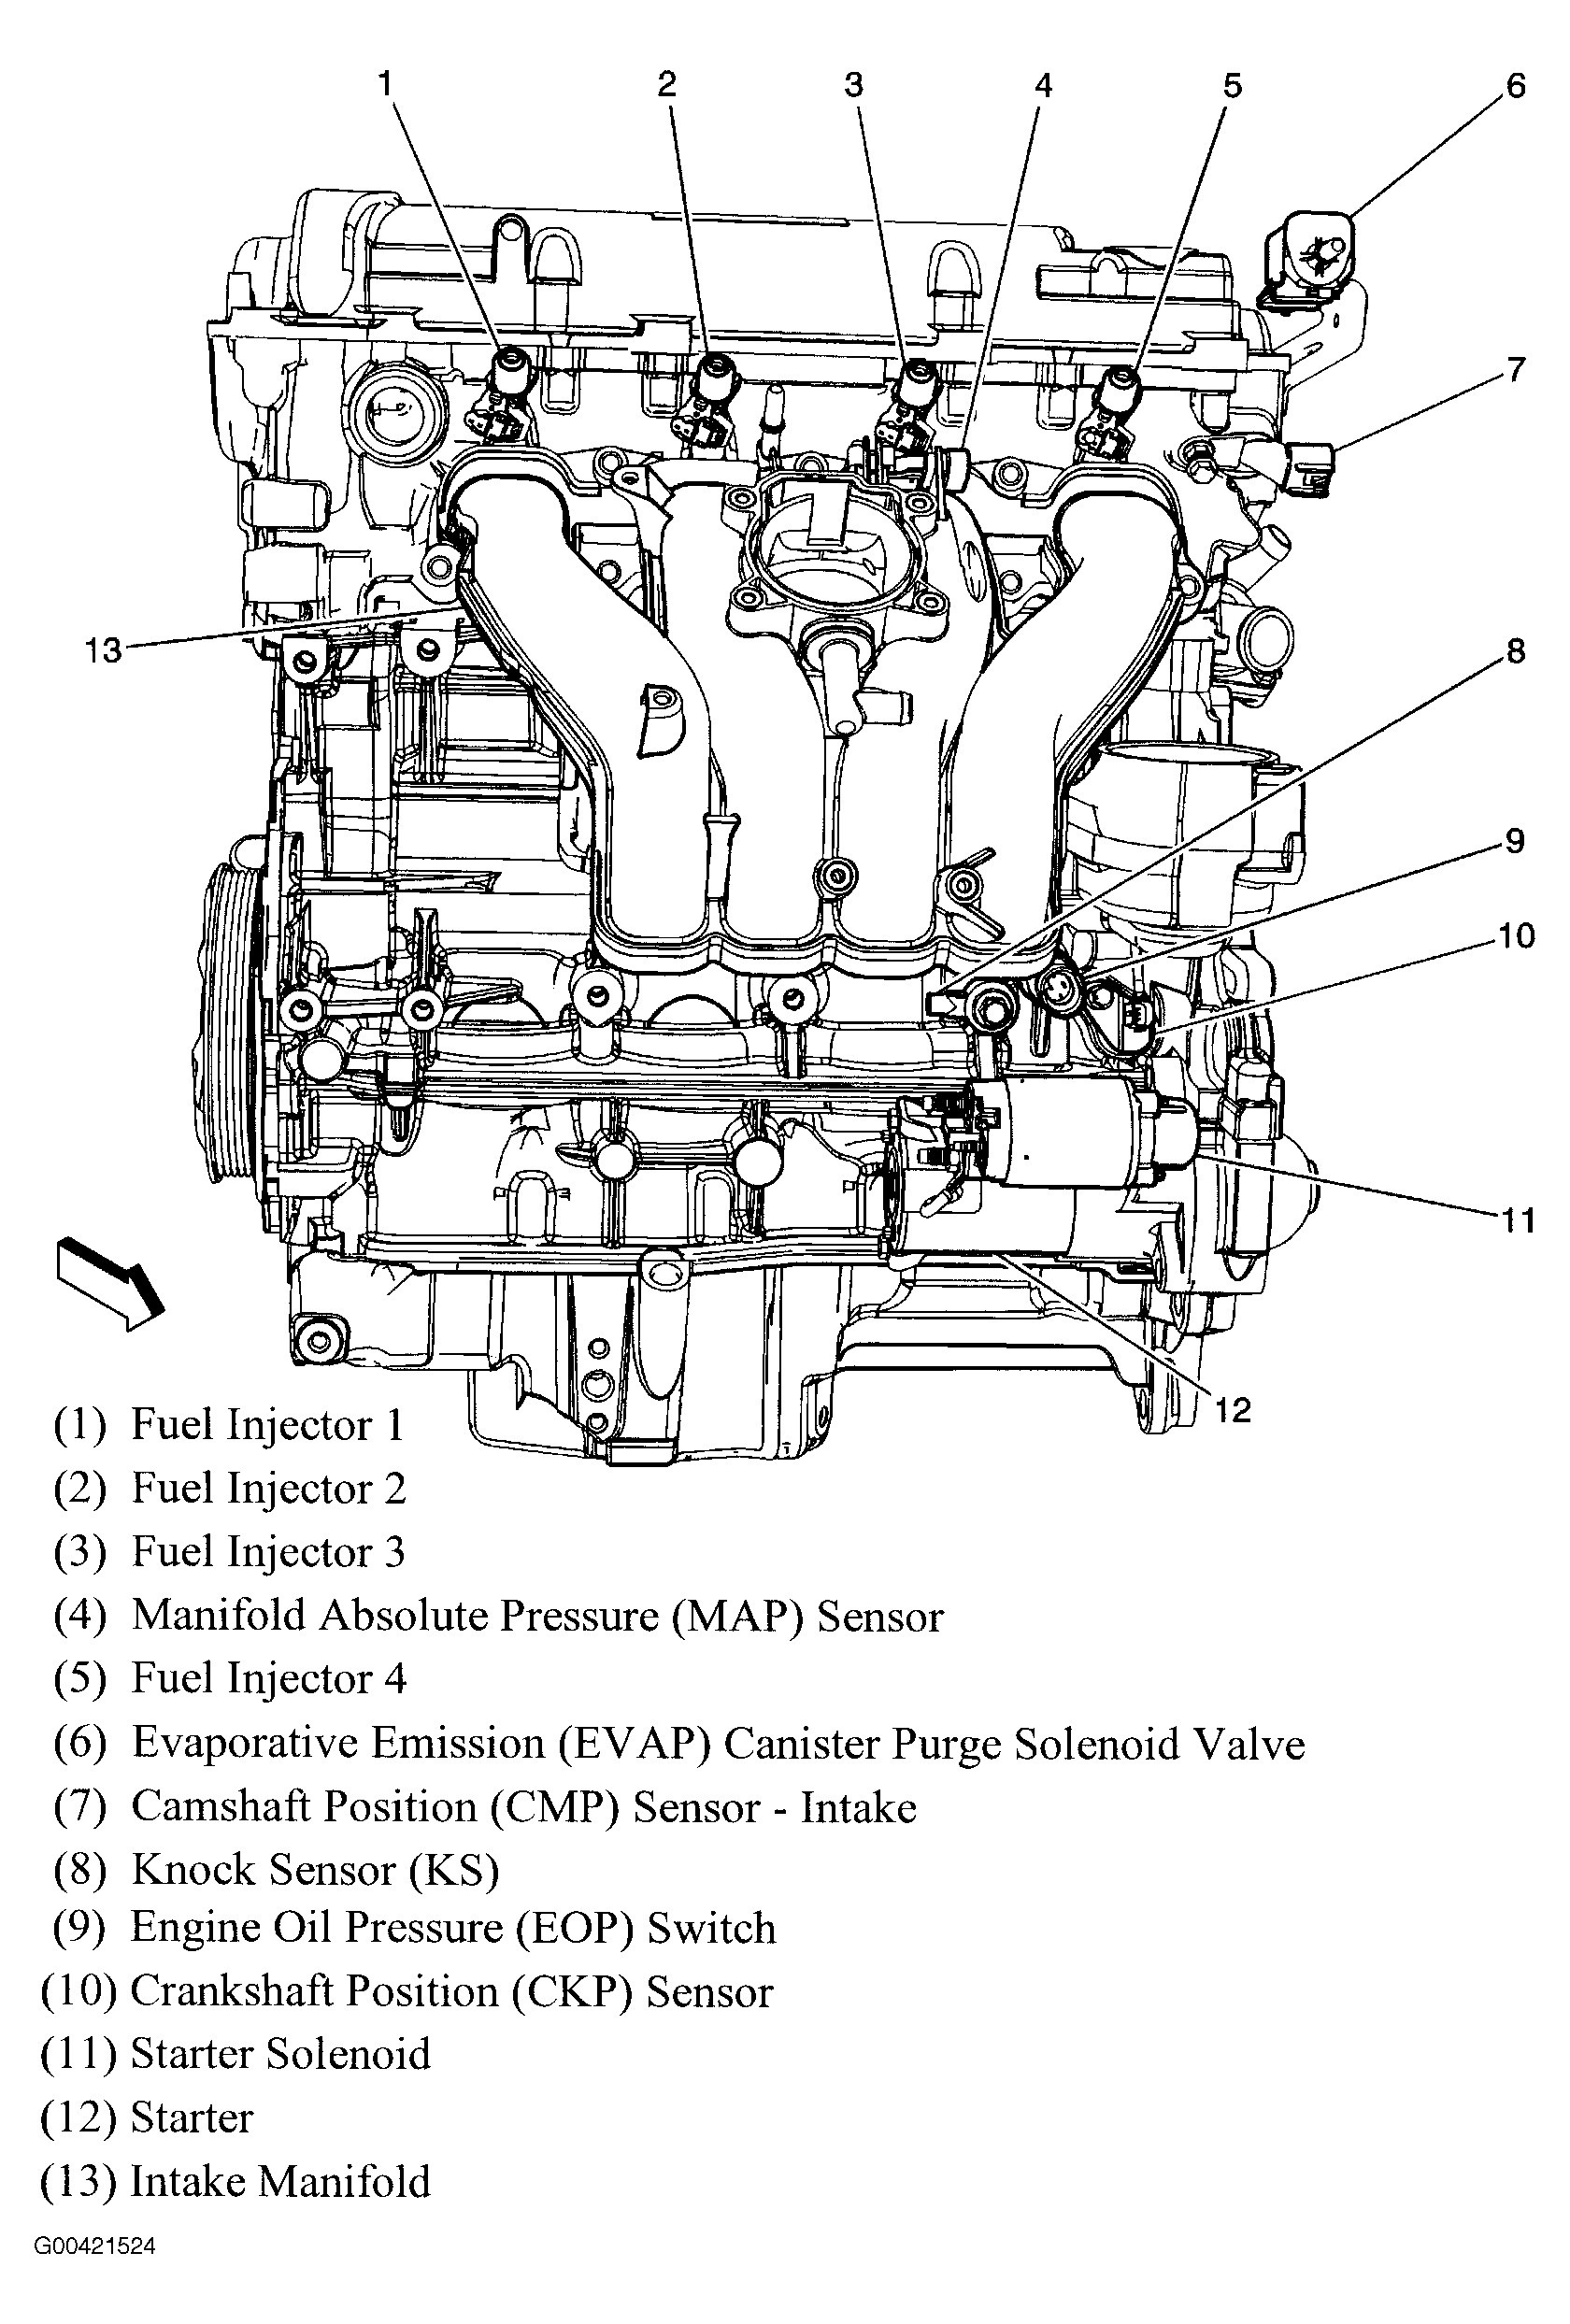 hight resolution of 2011 camaro engine diagram wiring diagram paper 2000 pontiac grand prix se engine diagram 2000 pontiac grand am engine diagram